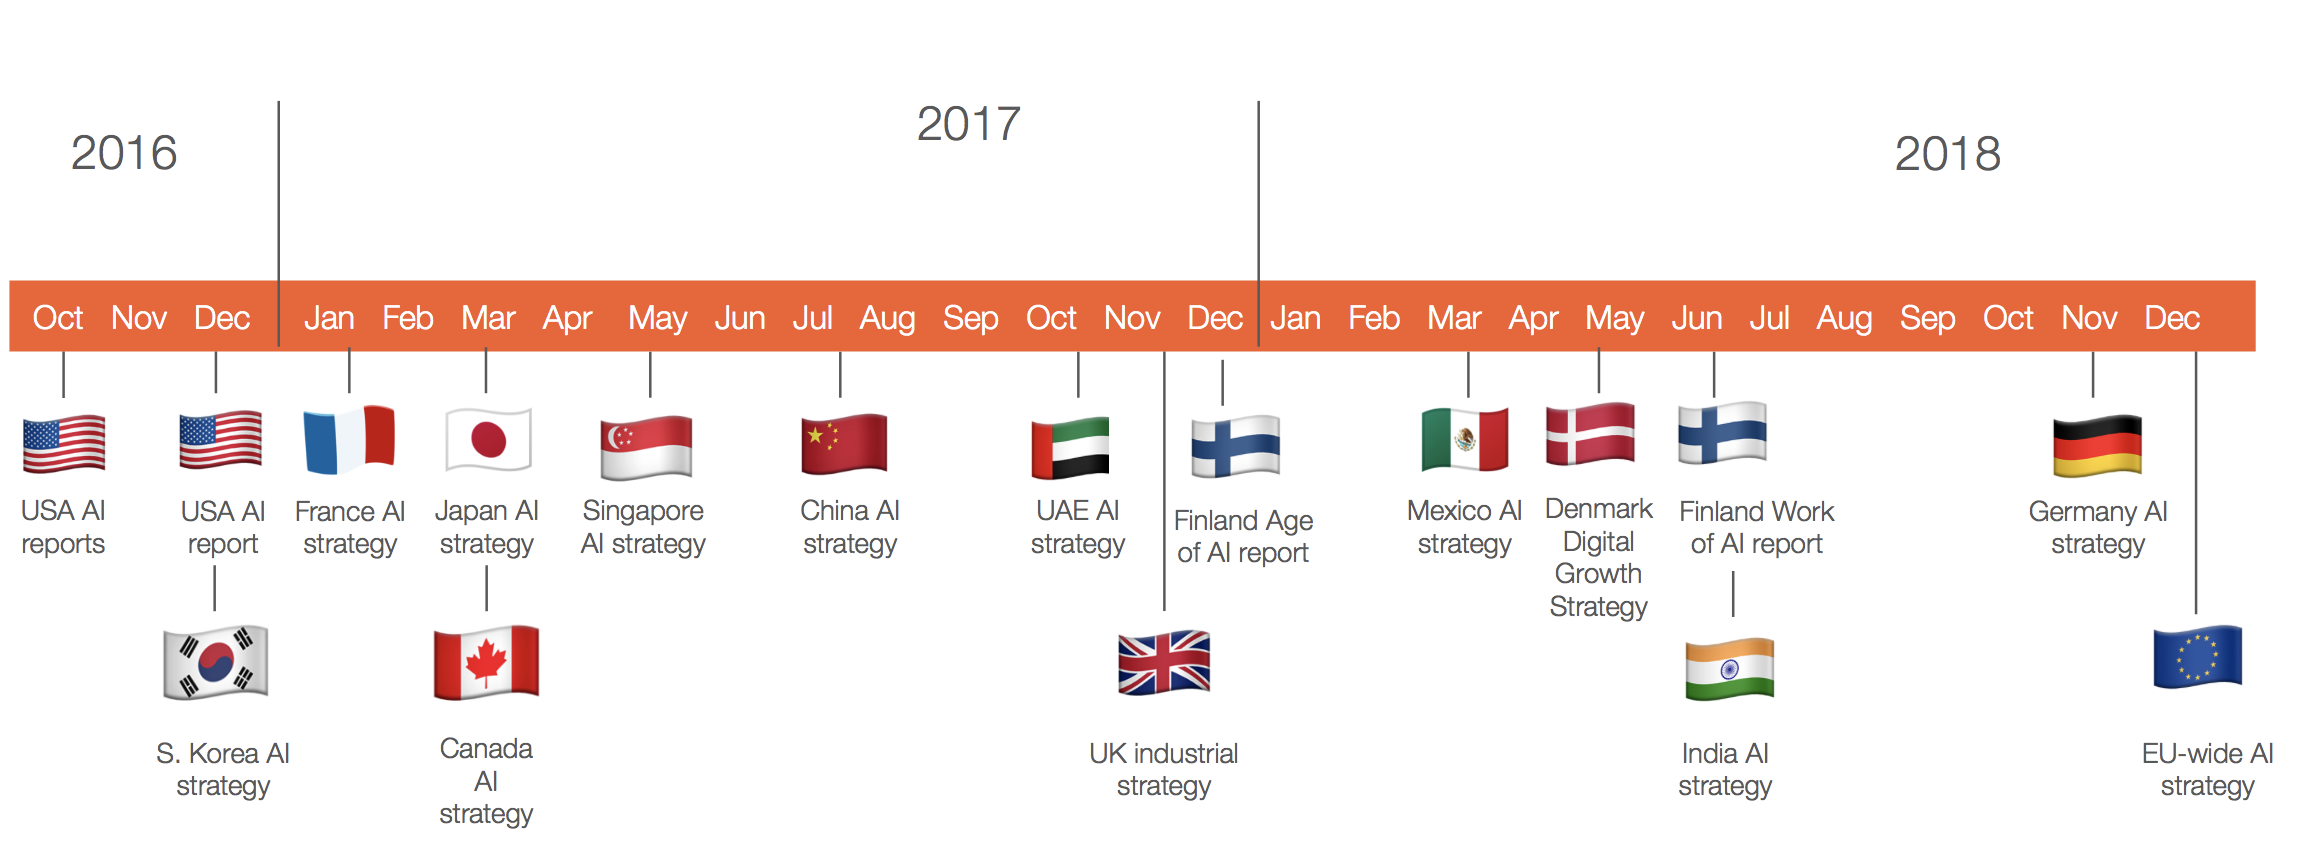 Figure 2 | Timeline of existing and pending AI strategies